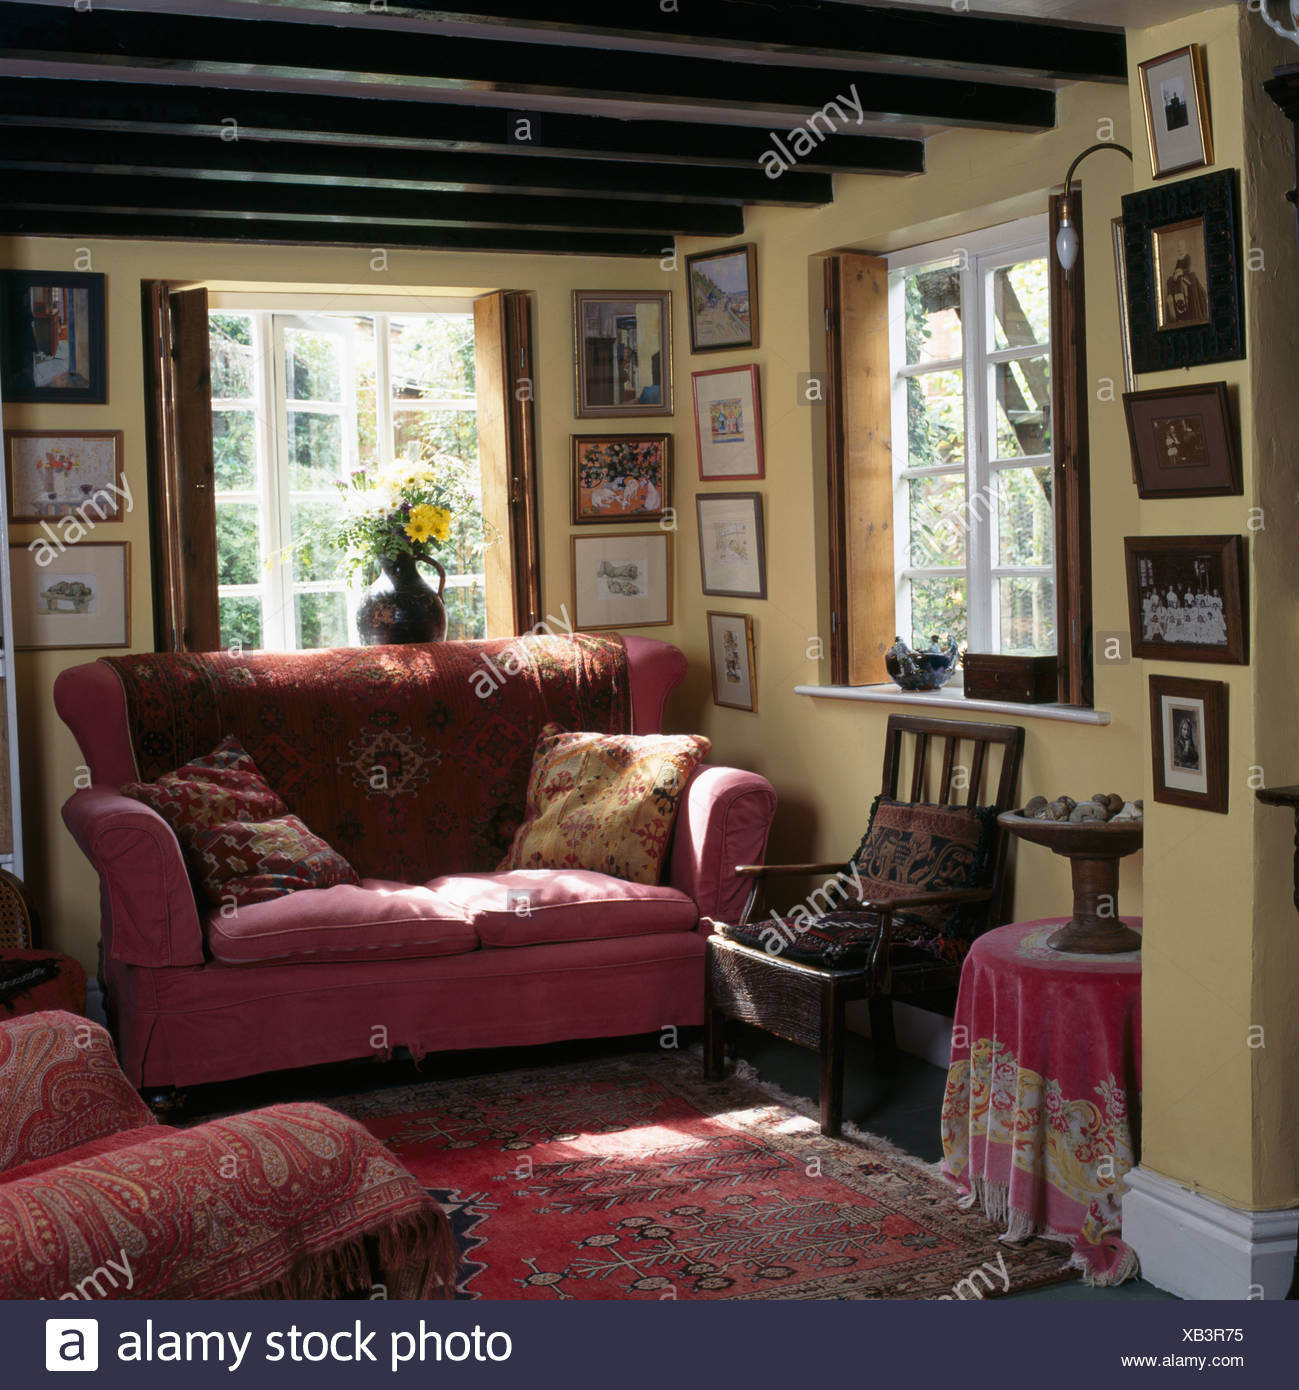 Pink Sofa In Front Of Window In Beamed Cottage Living Room With Collection  Of Small Pictures On The Walls